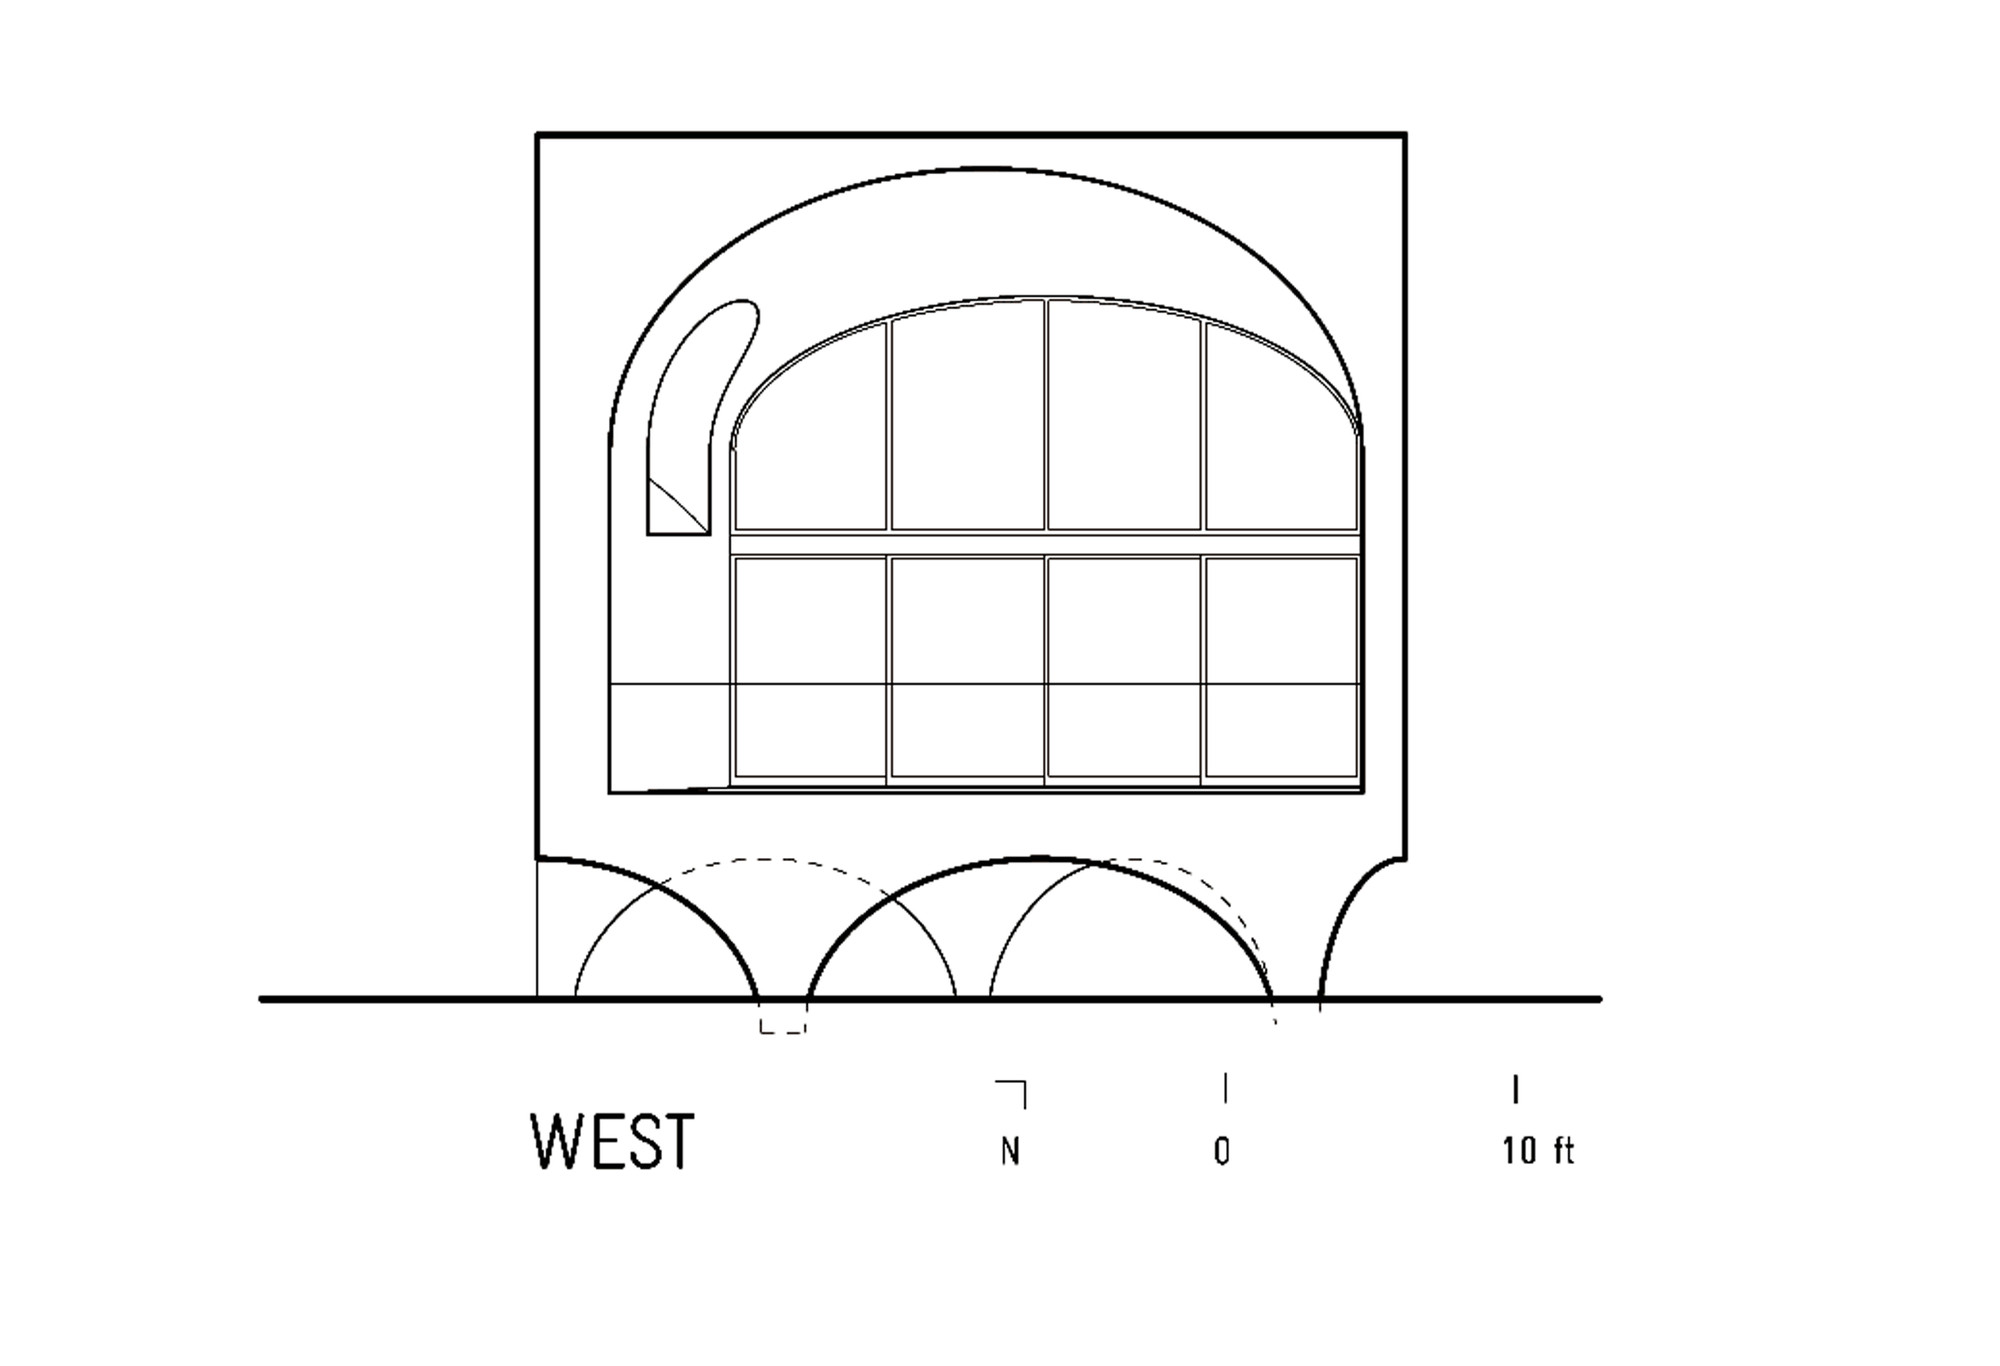 23_Elevation_West.jpg